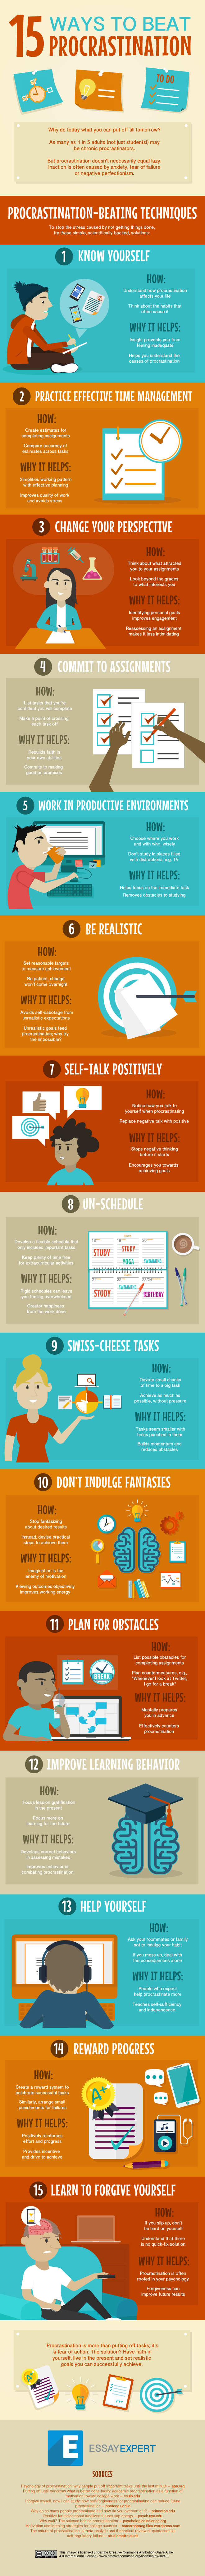 15 Tips You Can Use To Beat Procrastination (infographic)